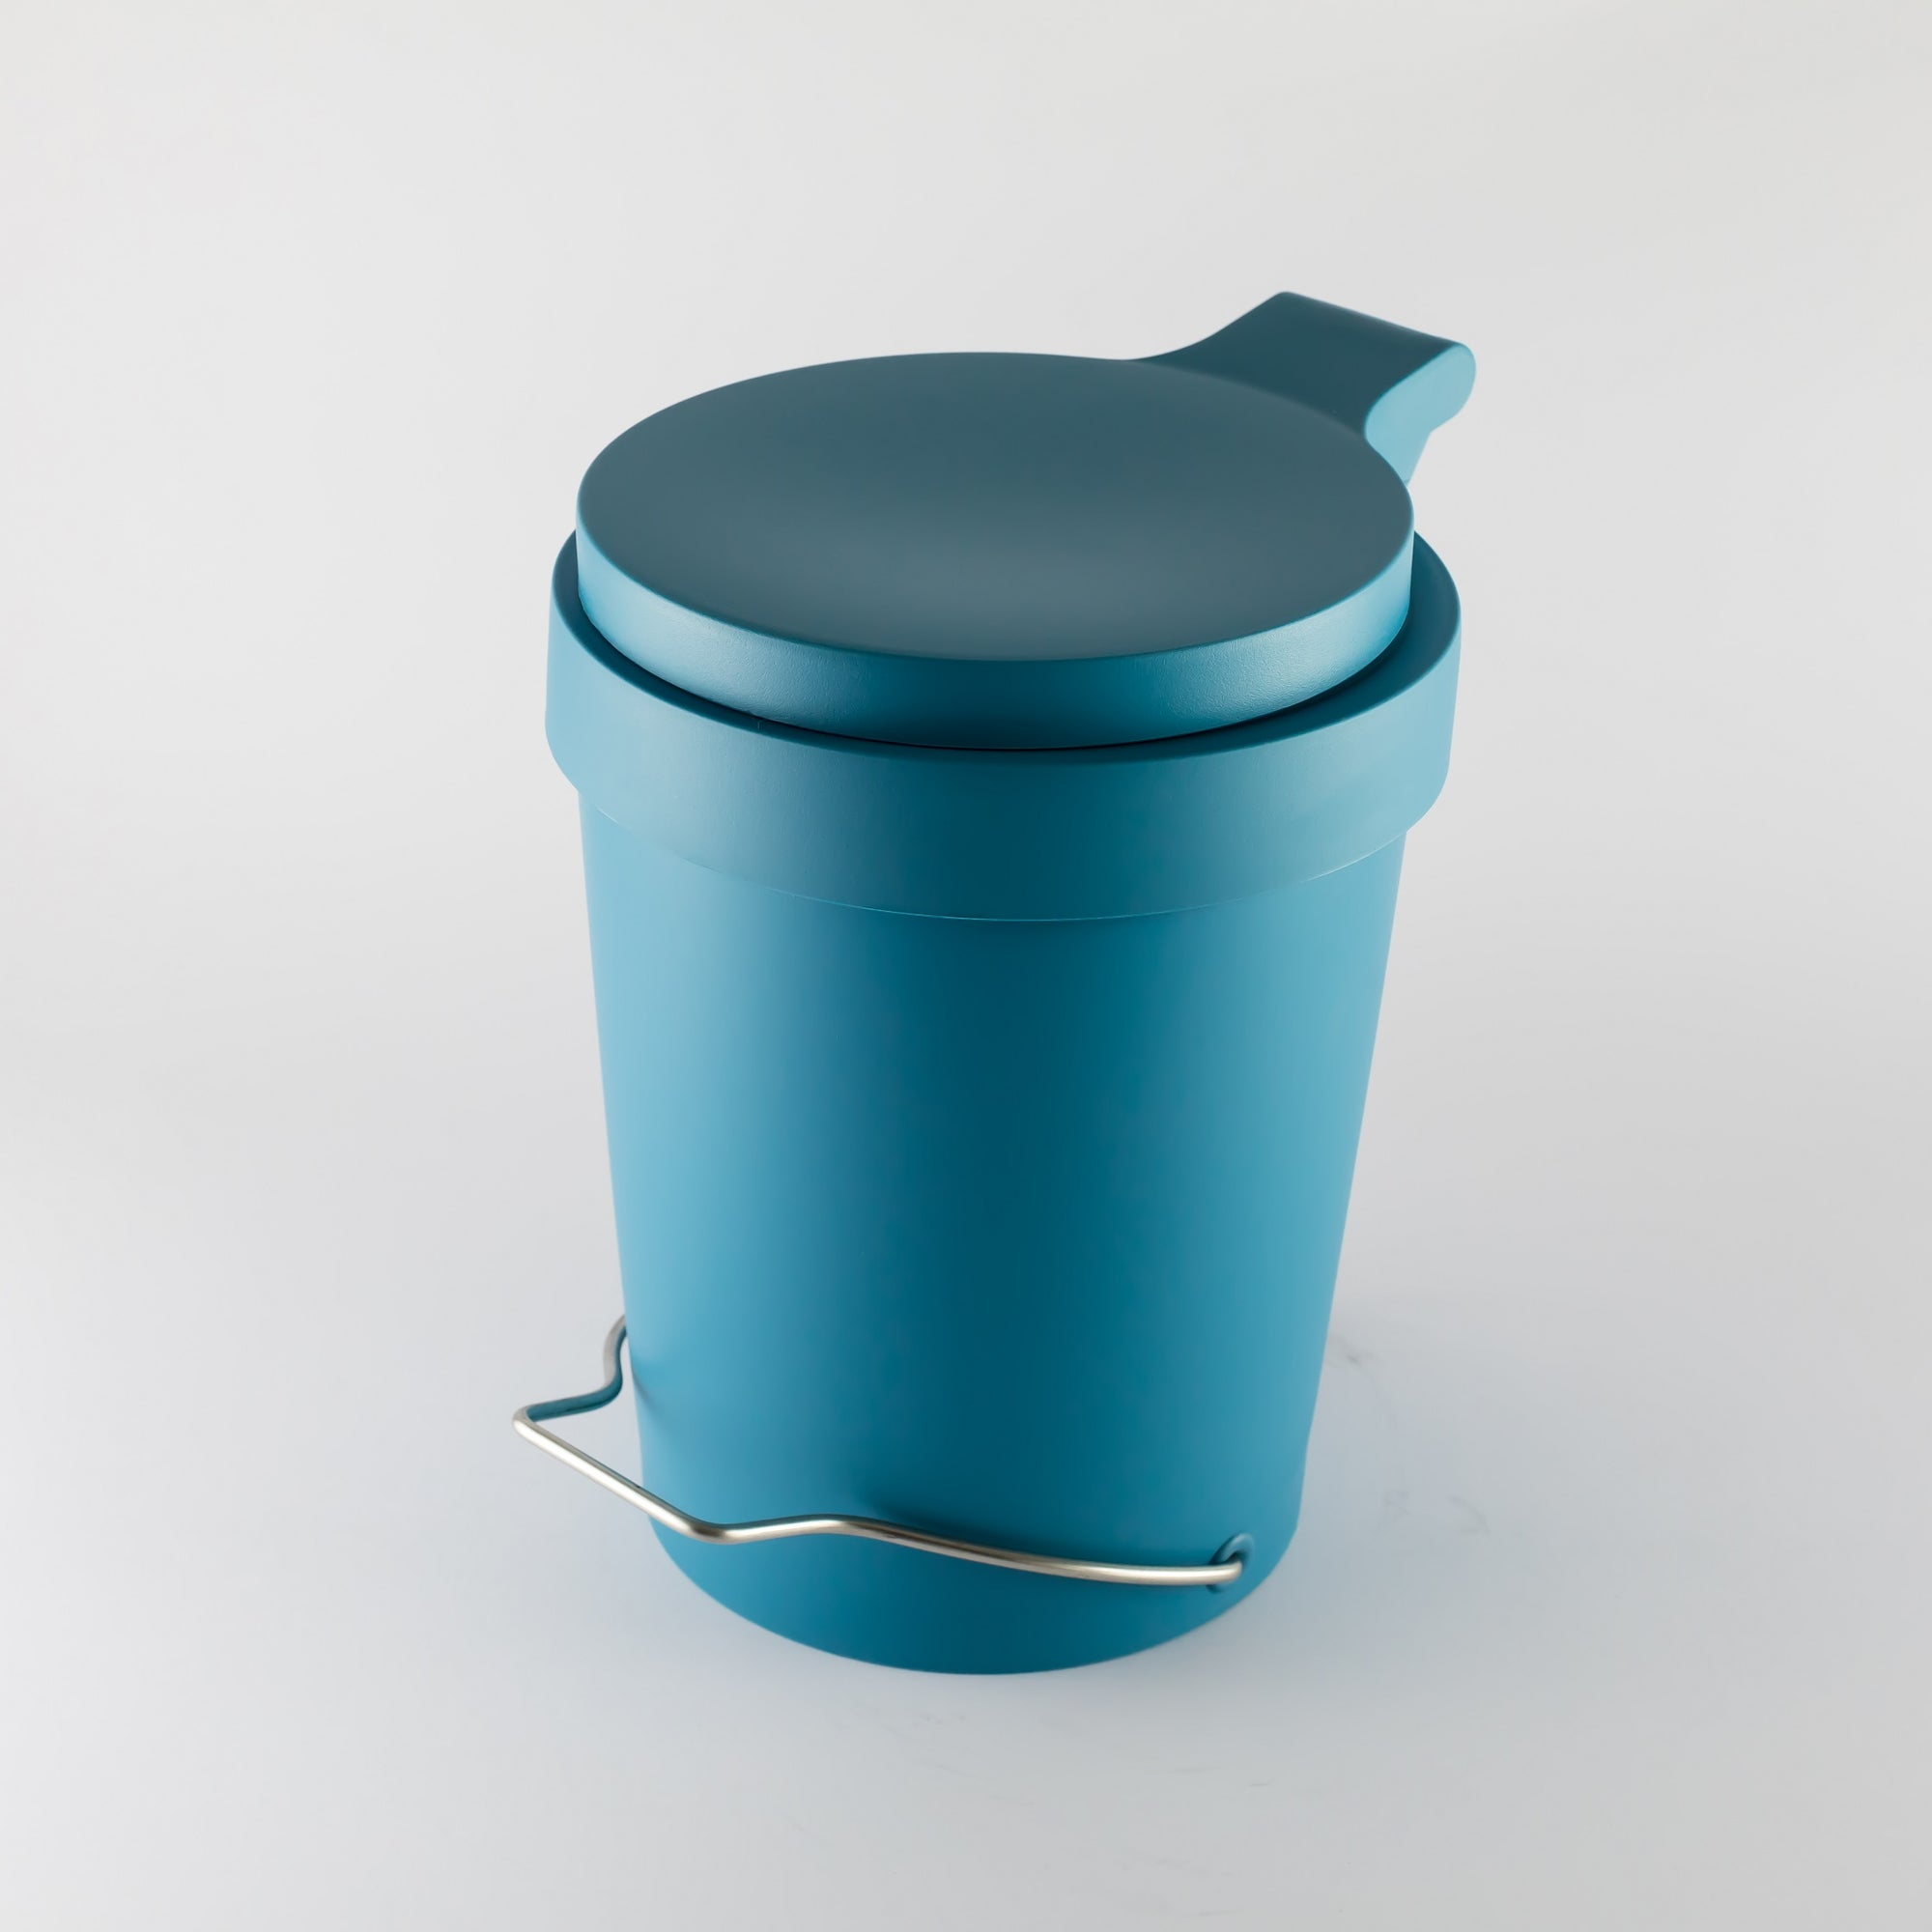 Tip 7L Pedal Bin- Tuquoise